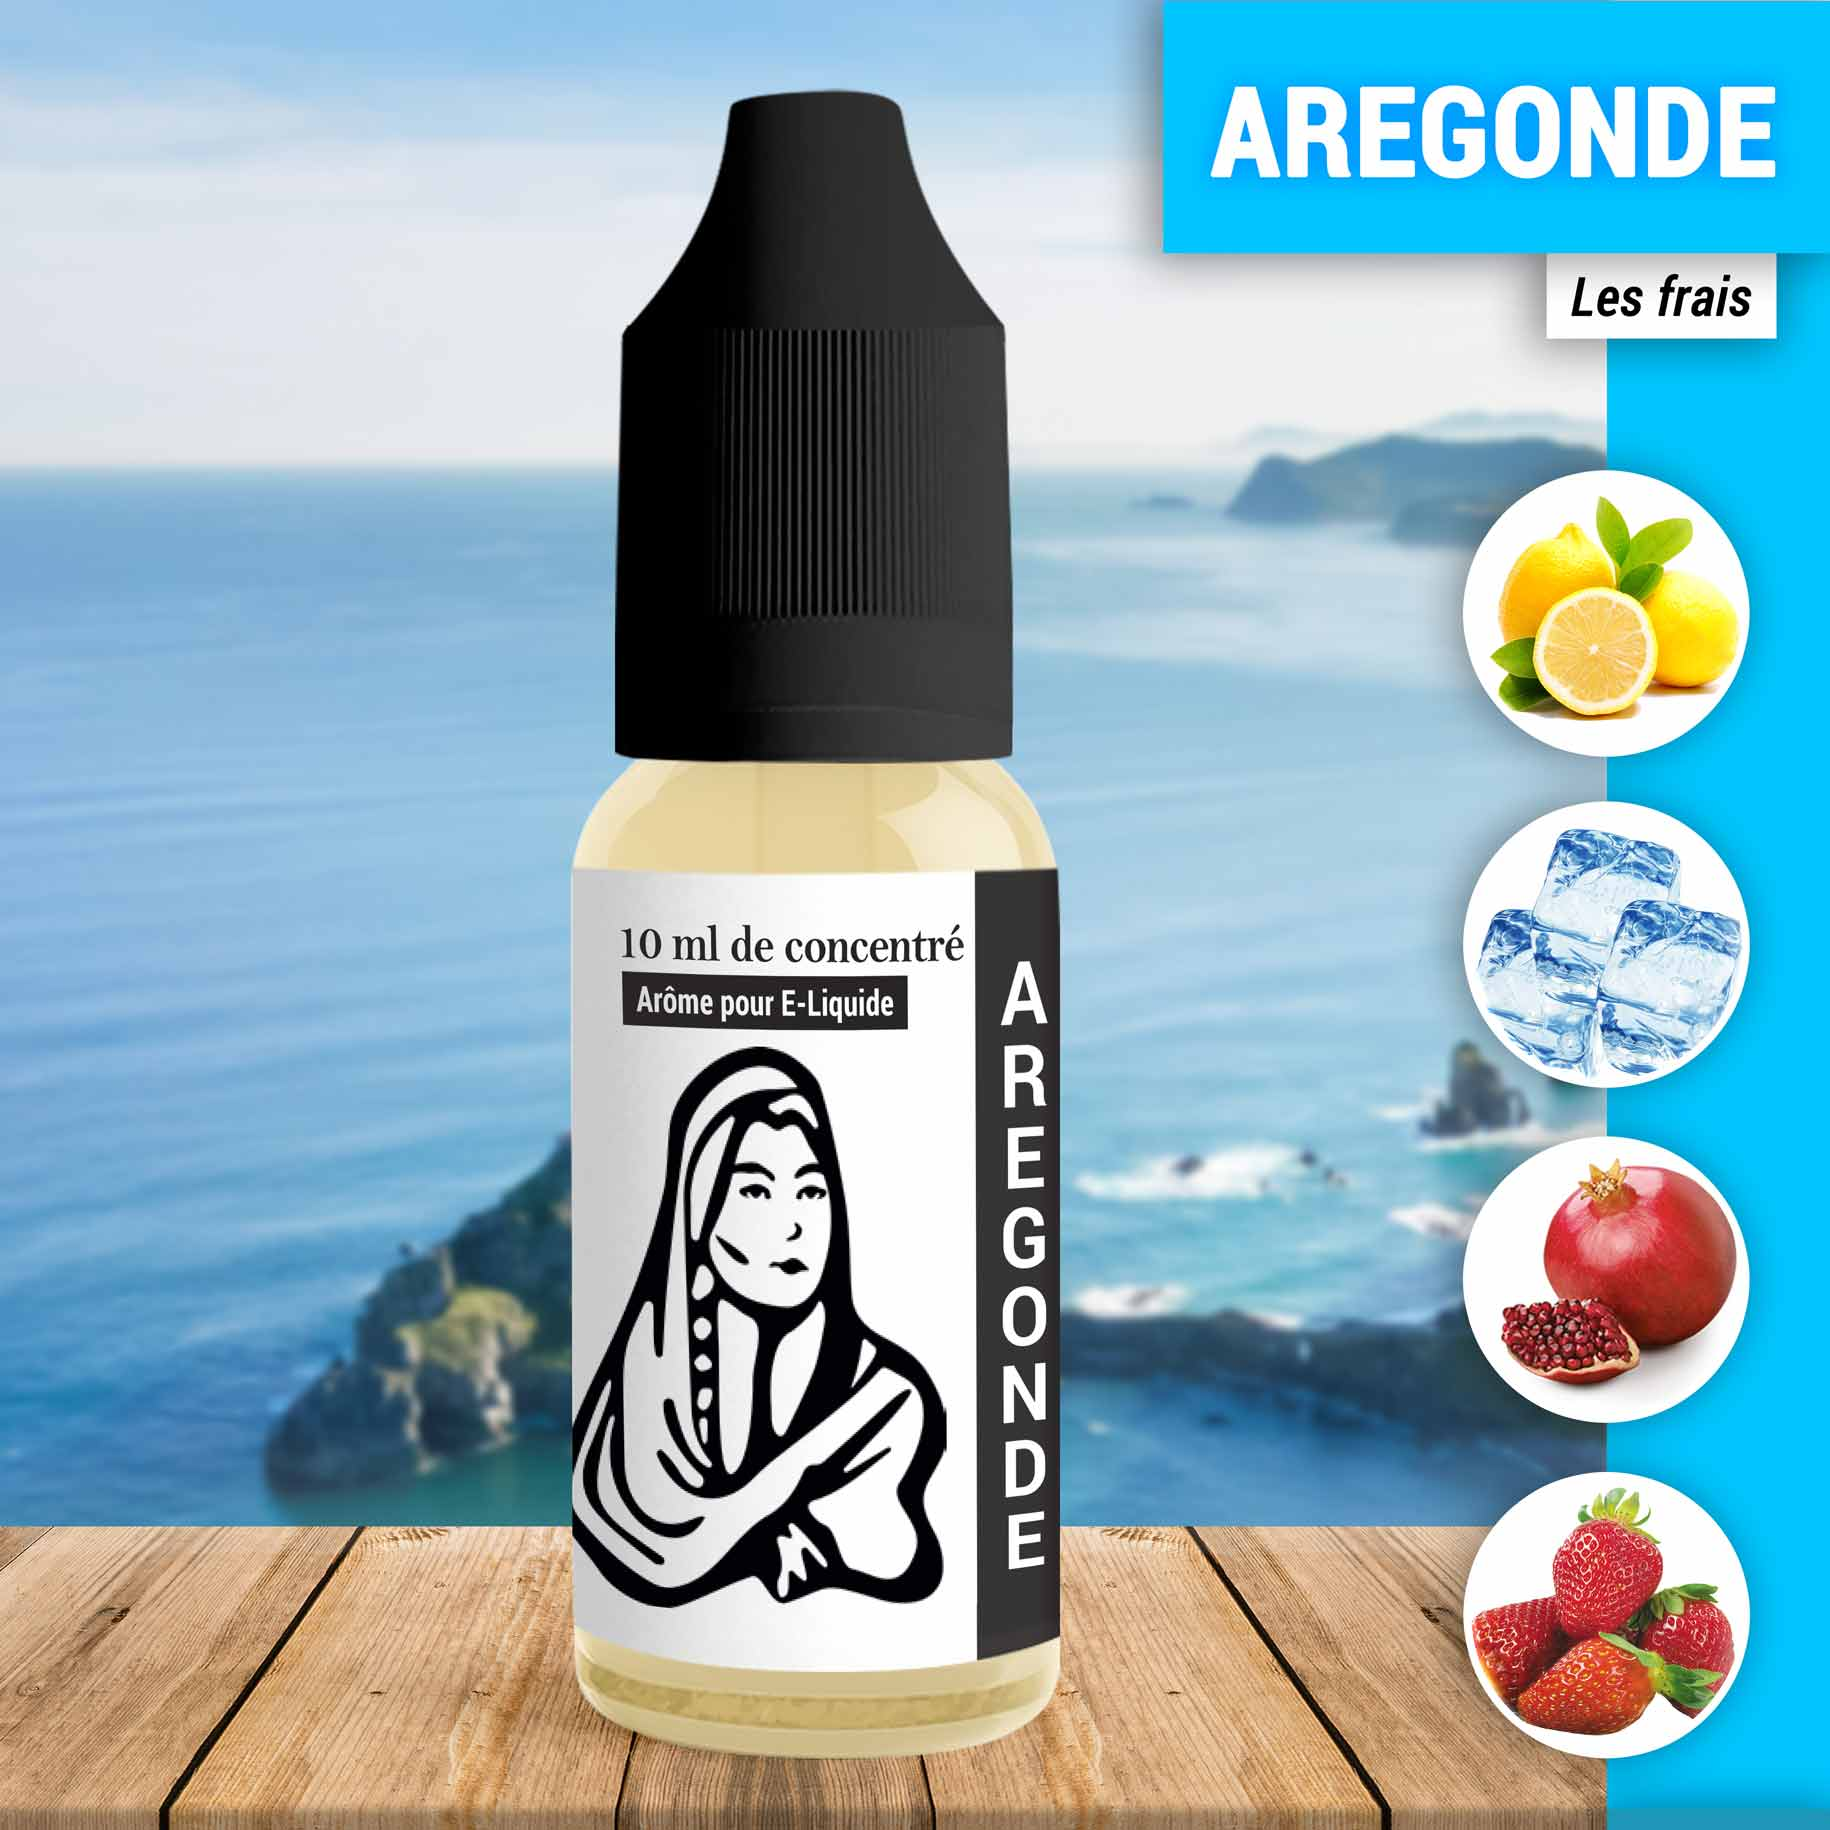 814_Packshot_Concentre_10ml_Aregonde